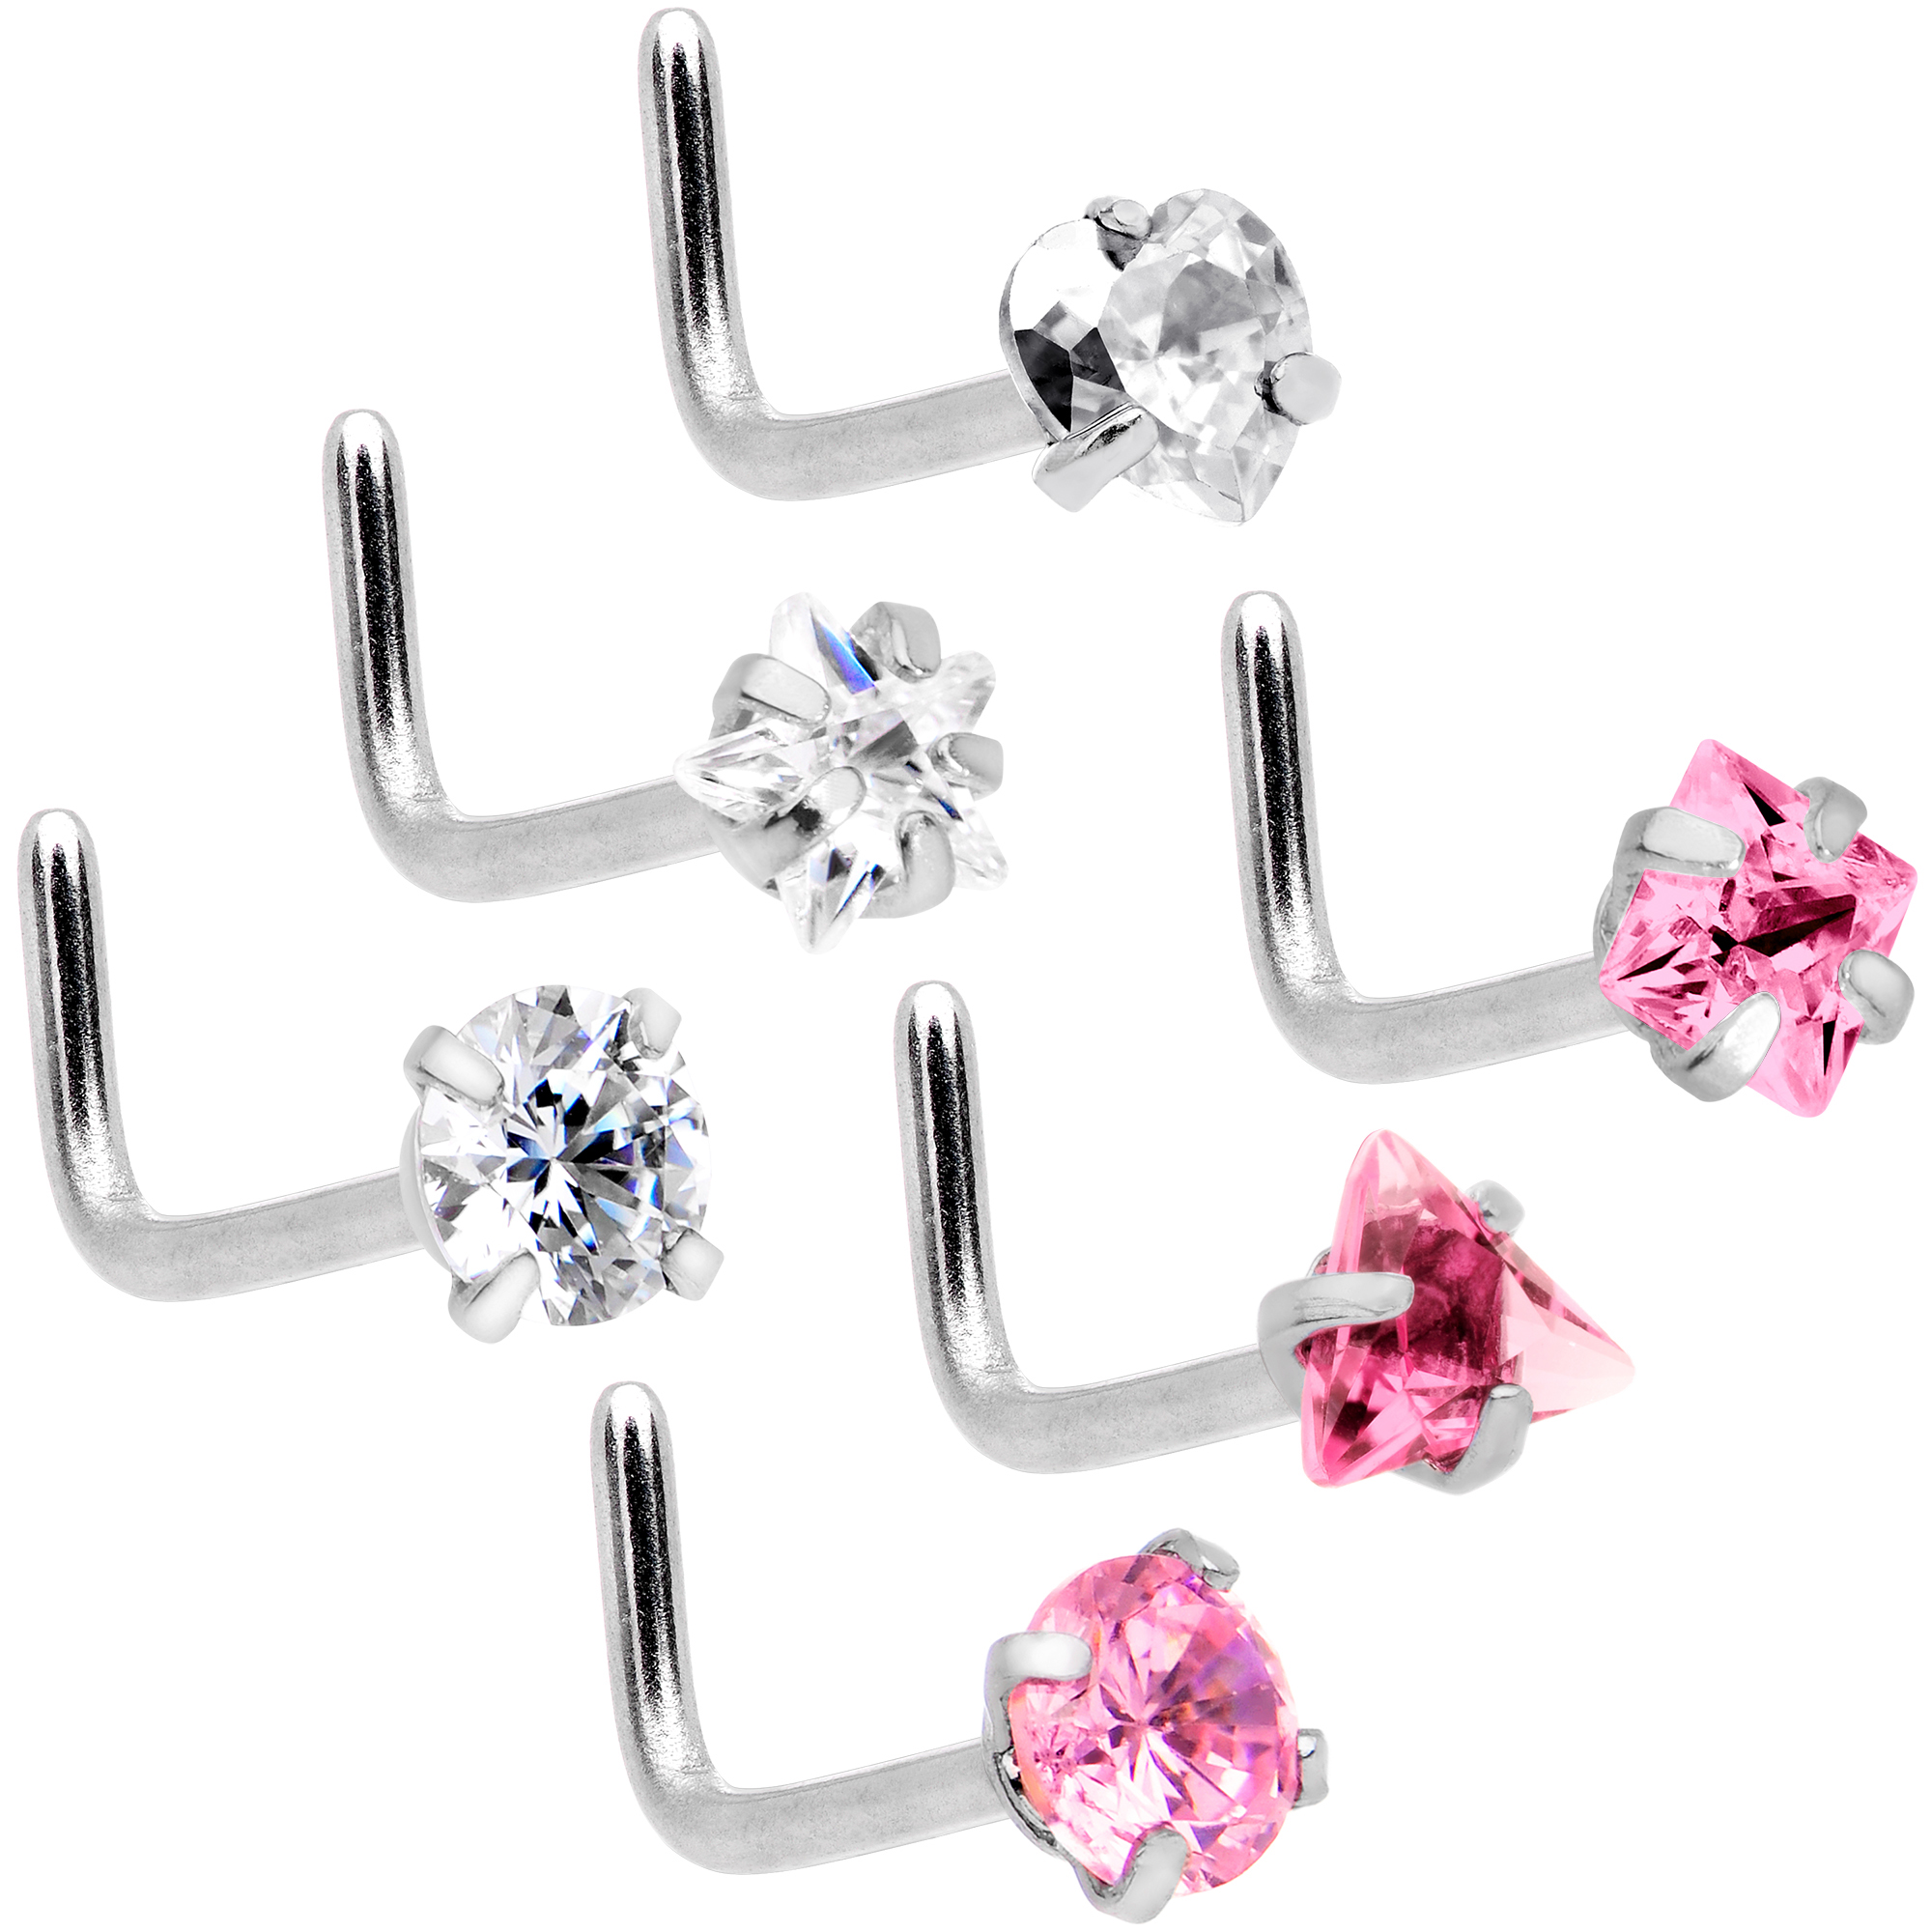 Body Candy 6Pc Womens 20G Steel L Shaped Nose Ring Clear Pink Accent Variety Nose Stud Body Jewelry 5/16""